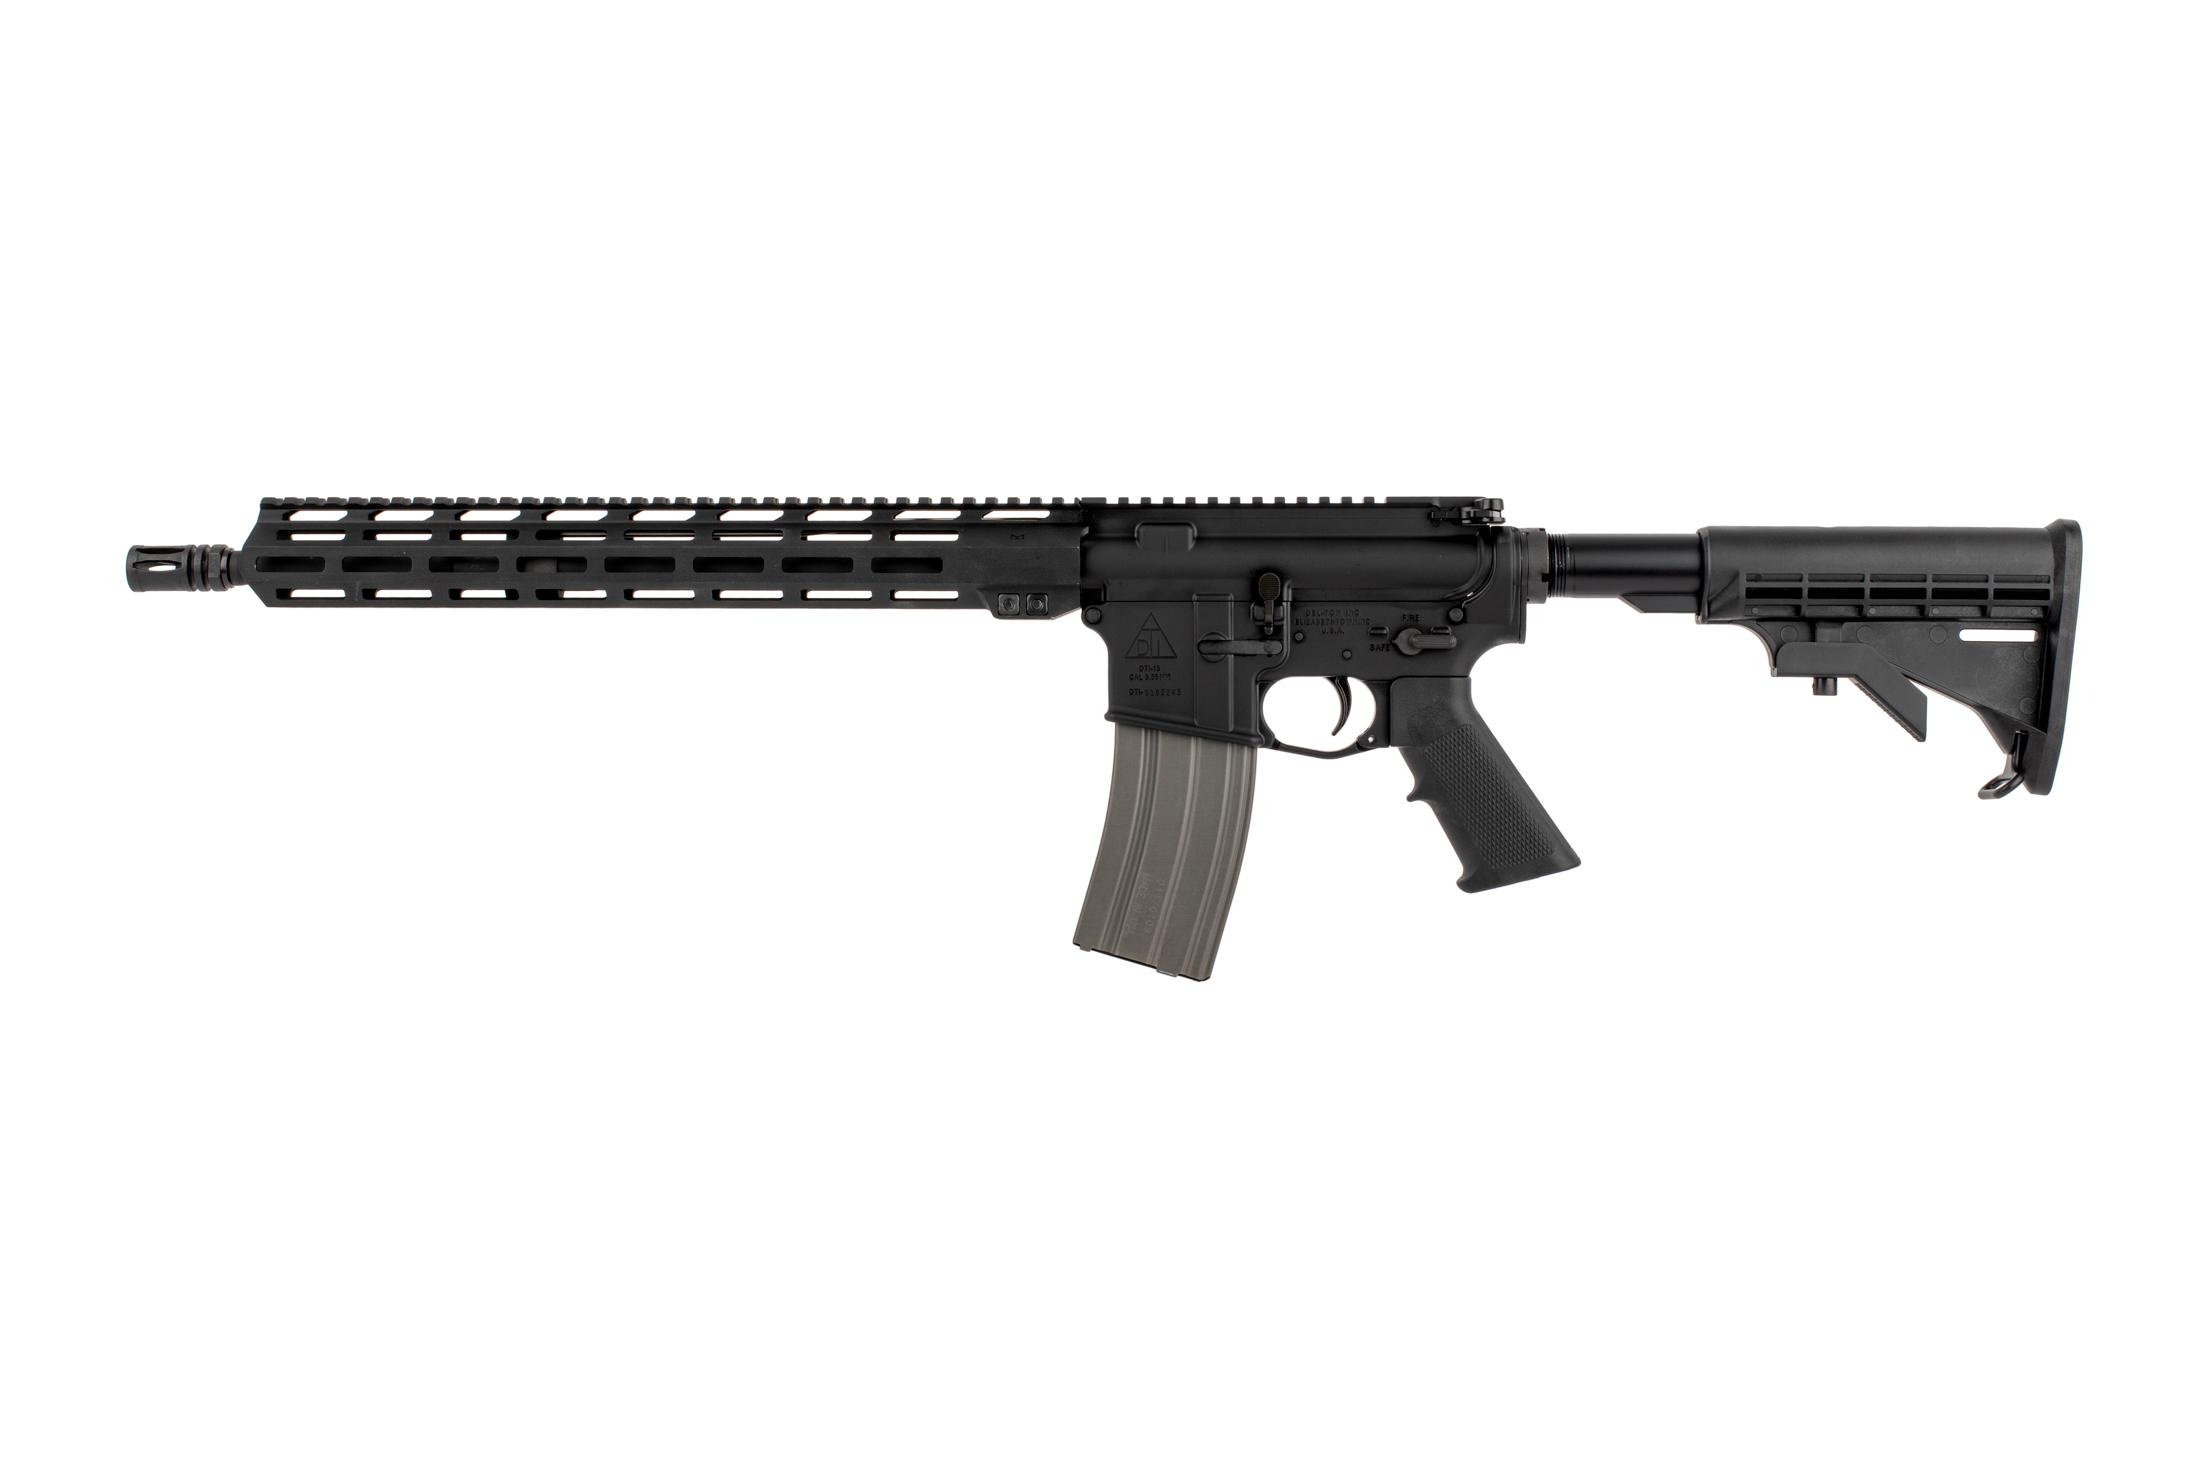 The Del-Ton AR15 Sierra 316L Carbine comes with a 30 round aluminum magazine